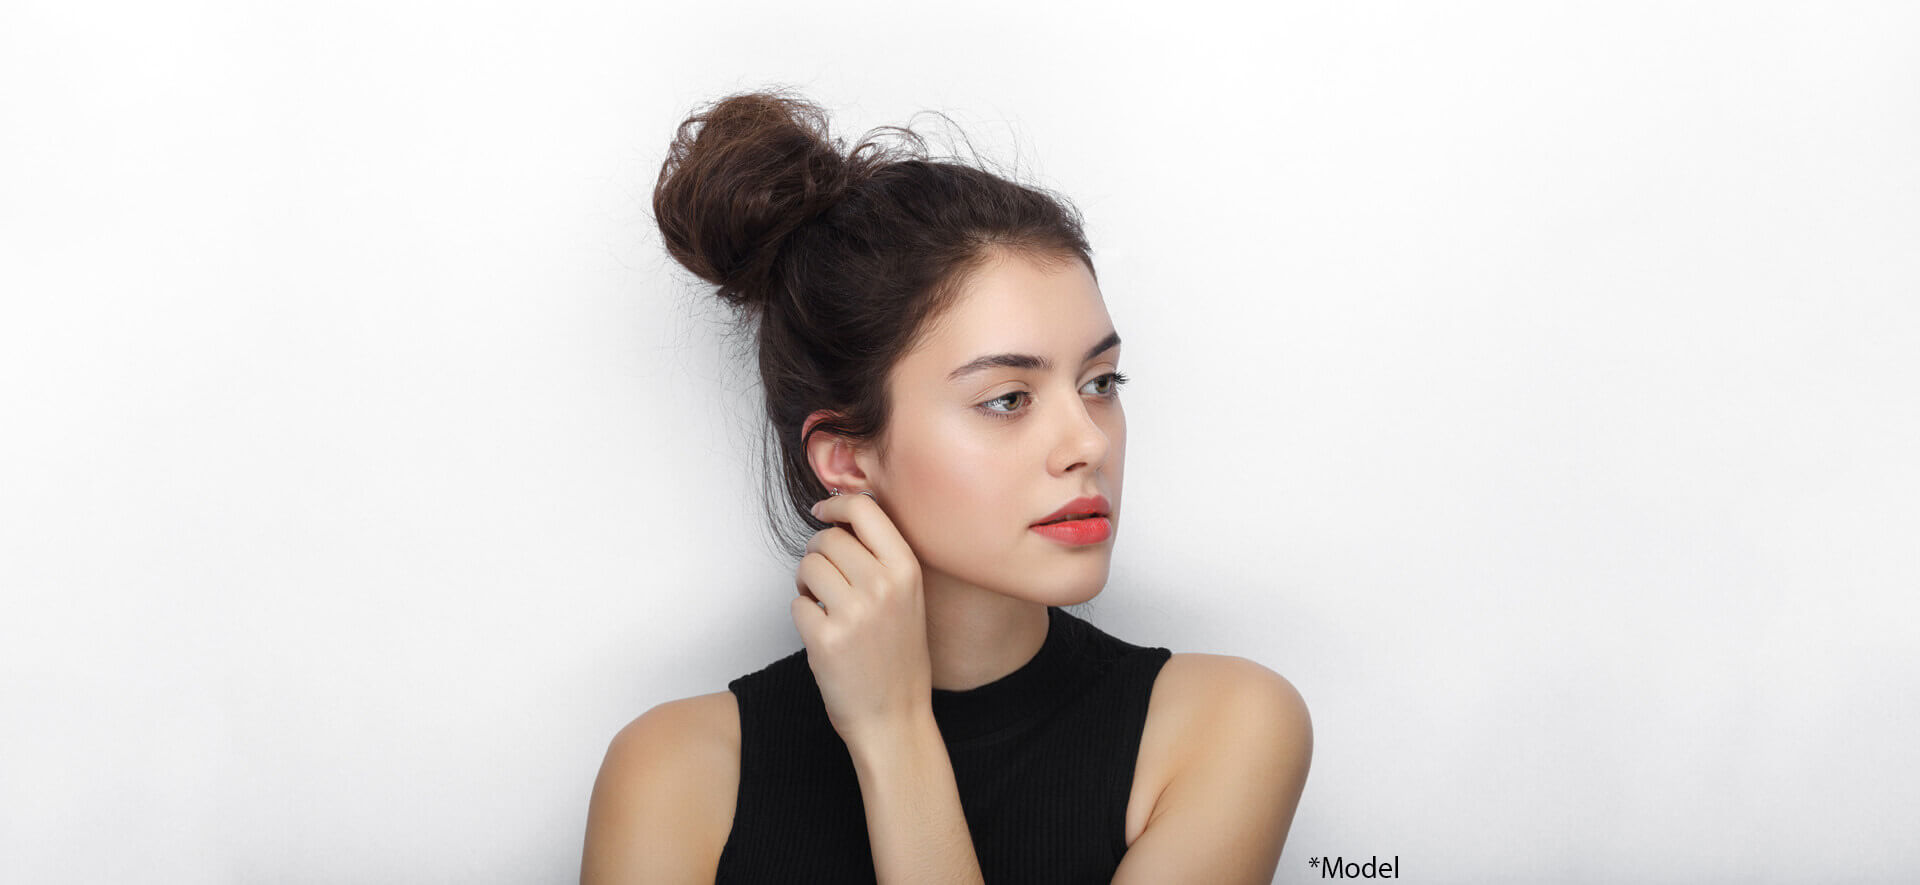 Beauty portrait of young adorable fresh looking brunette woman with high bun hairdo touching her ear